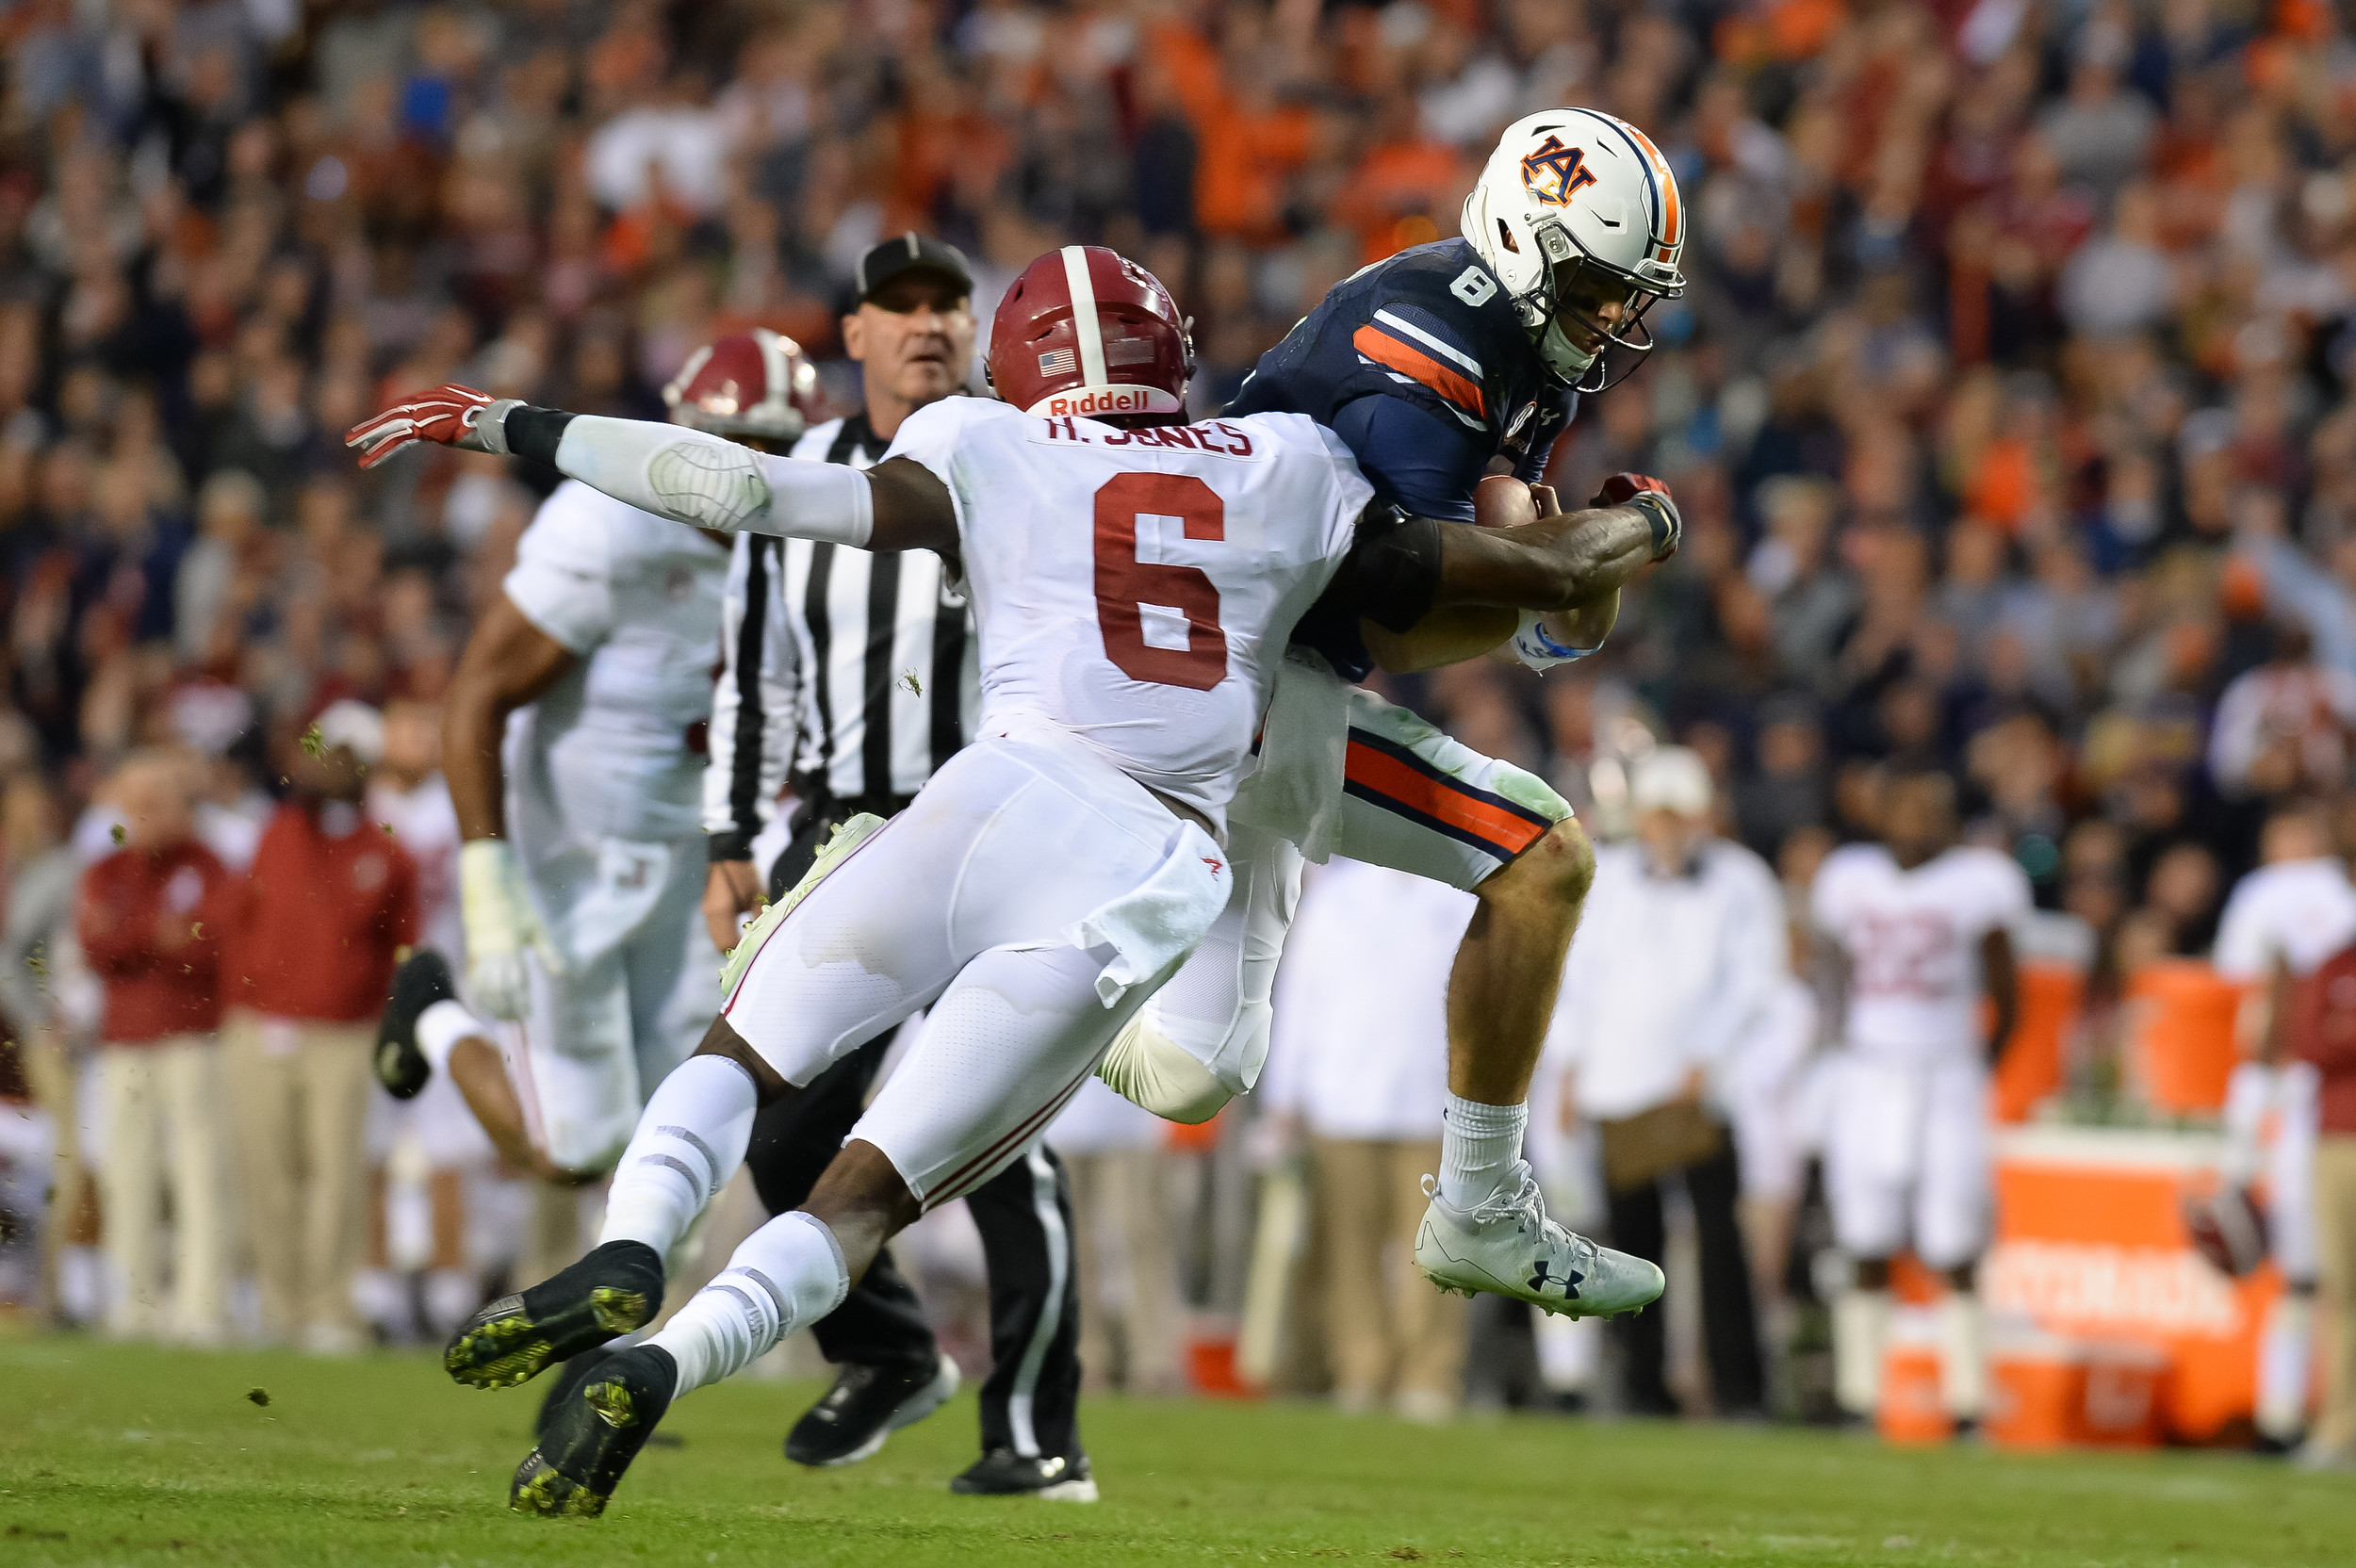 Alabama Crimson Tide defensive back Hootie Jones (6) tackles Auburn Tigers quarterback Jarrett Stidham (8) during the second half of Saturday's game, at Jordan-Hare Stadium.